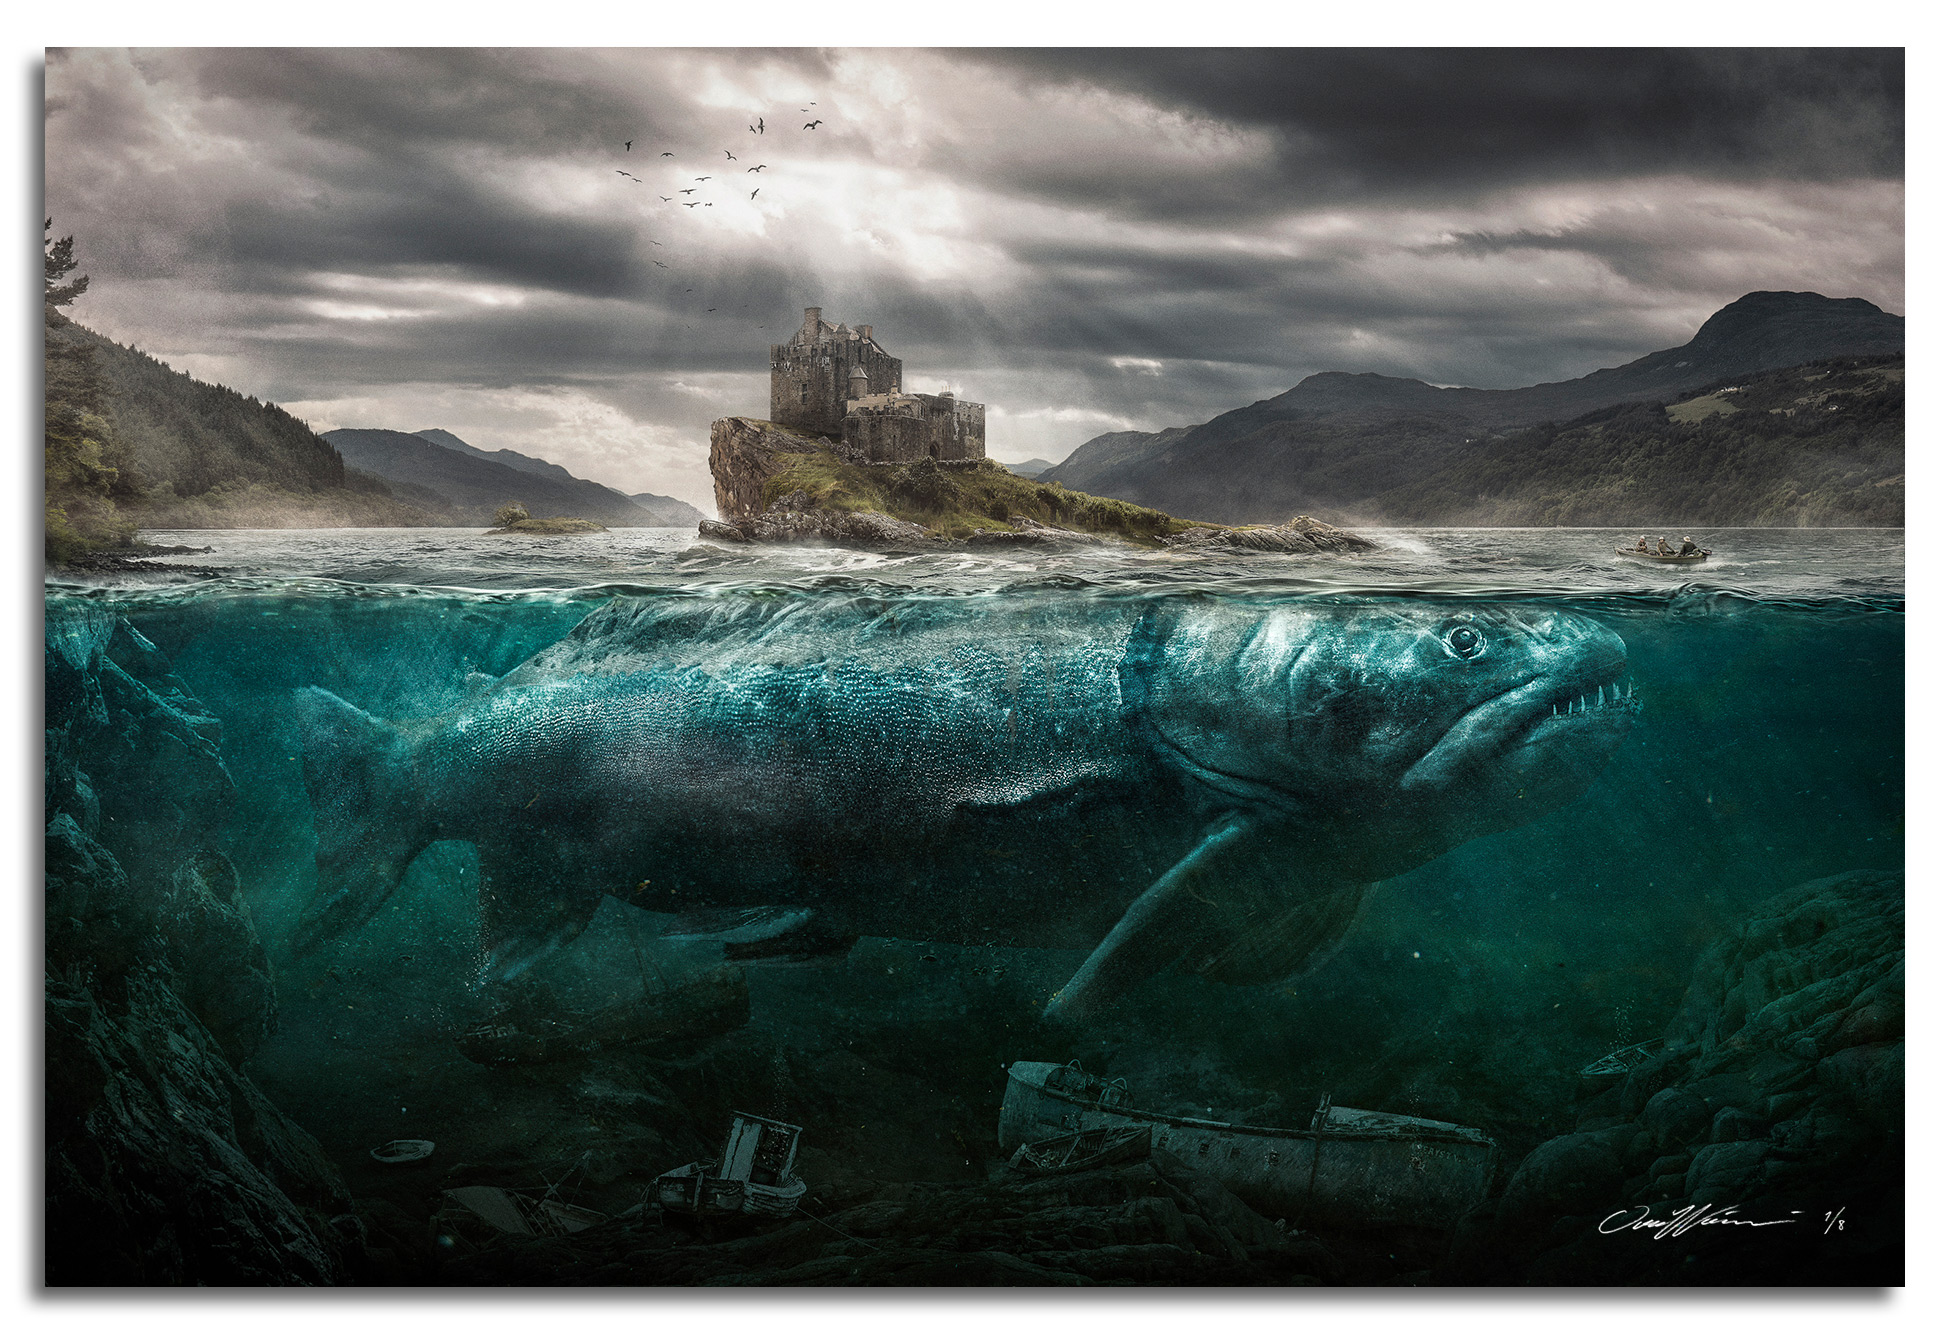 Loch Ness Salmon , 2018  Limited Edition prints available sizes: Large 150 x 100 cm - Edition of 3 Medium 90 x 60 cm - Edition of 8